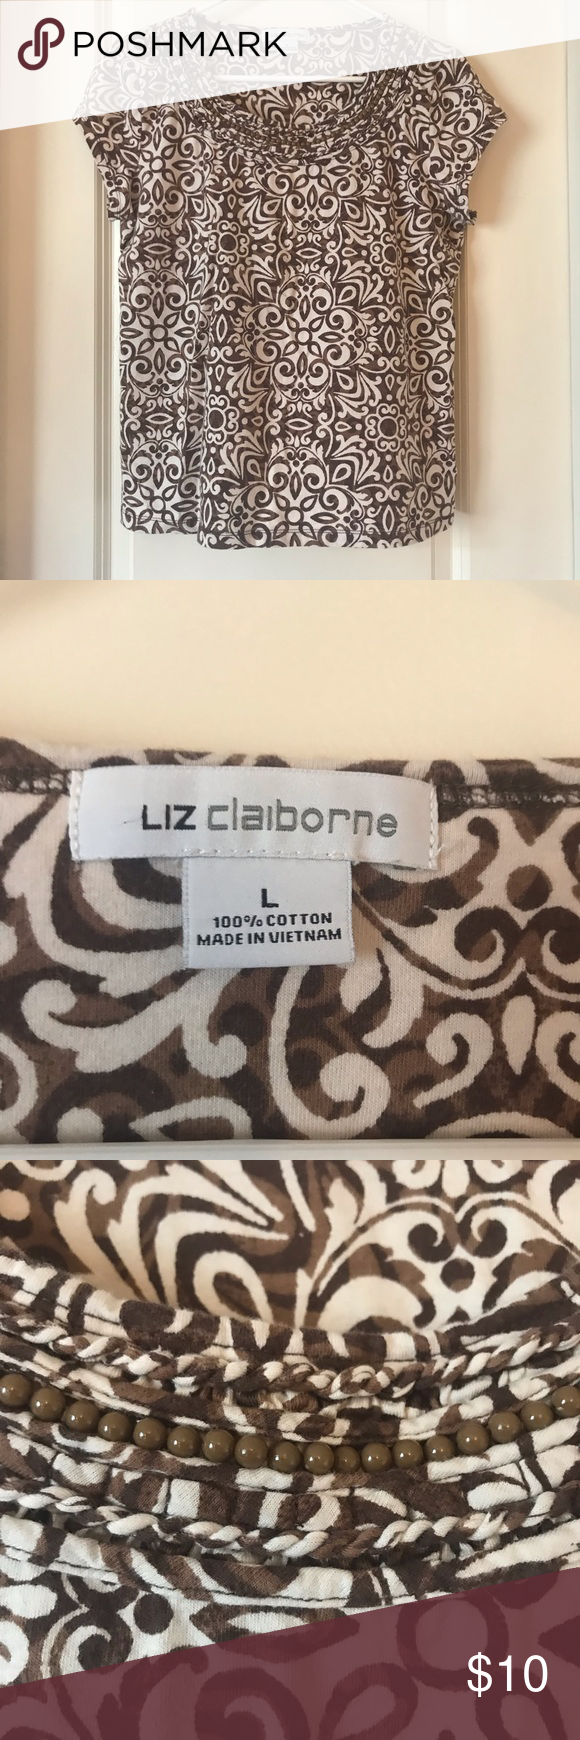 4a72d396ee3b6 Liz Claiborne Brown Cream Floral Design Top Great casual shirt to wear out  and about